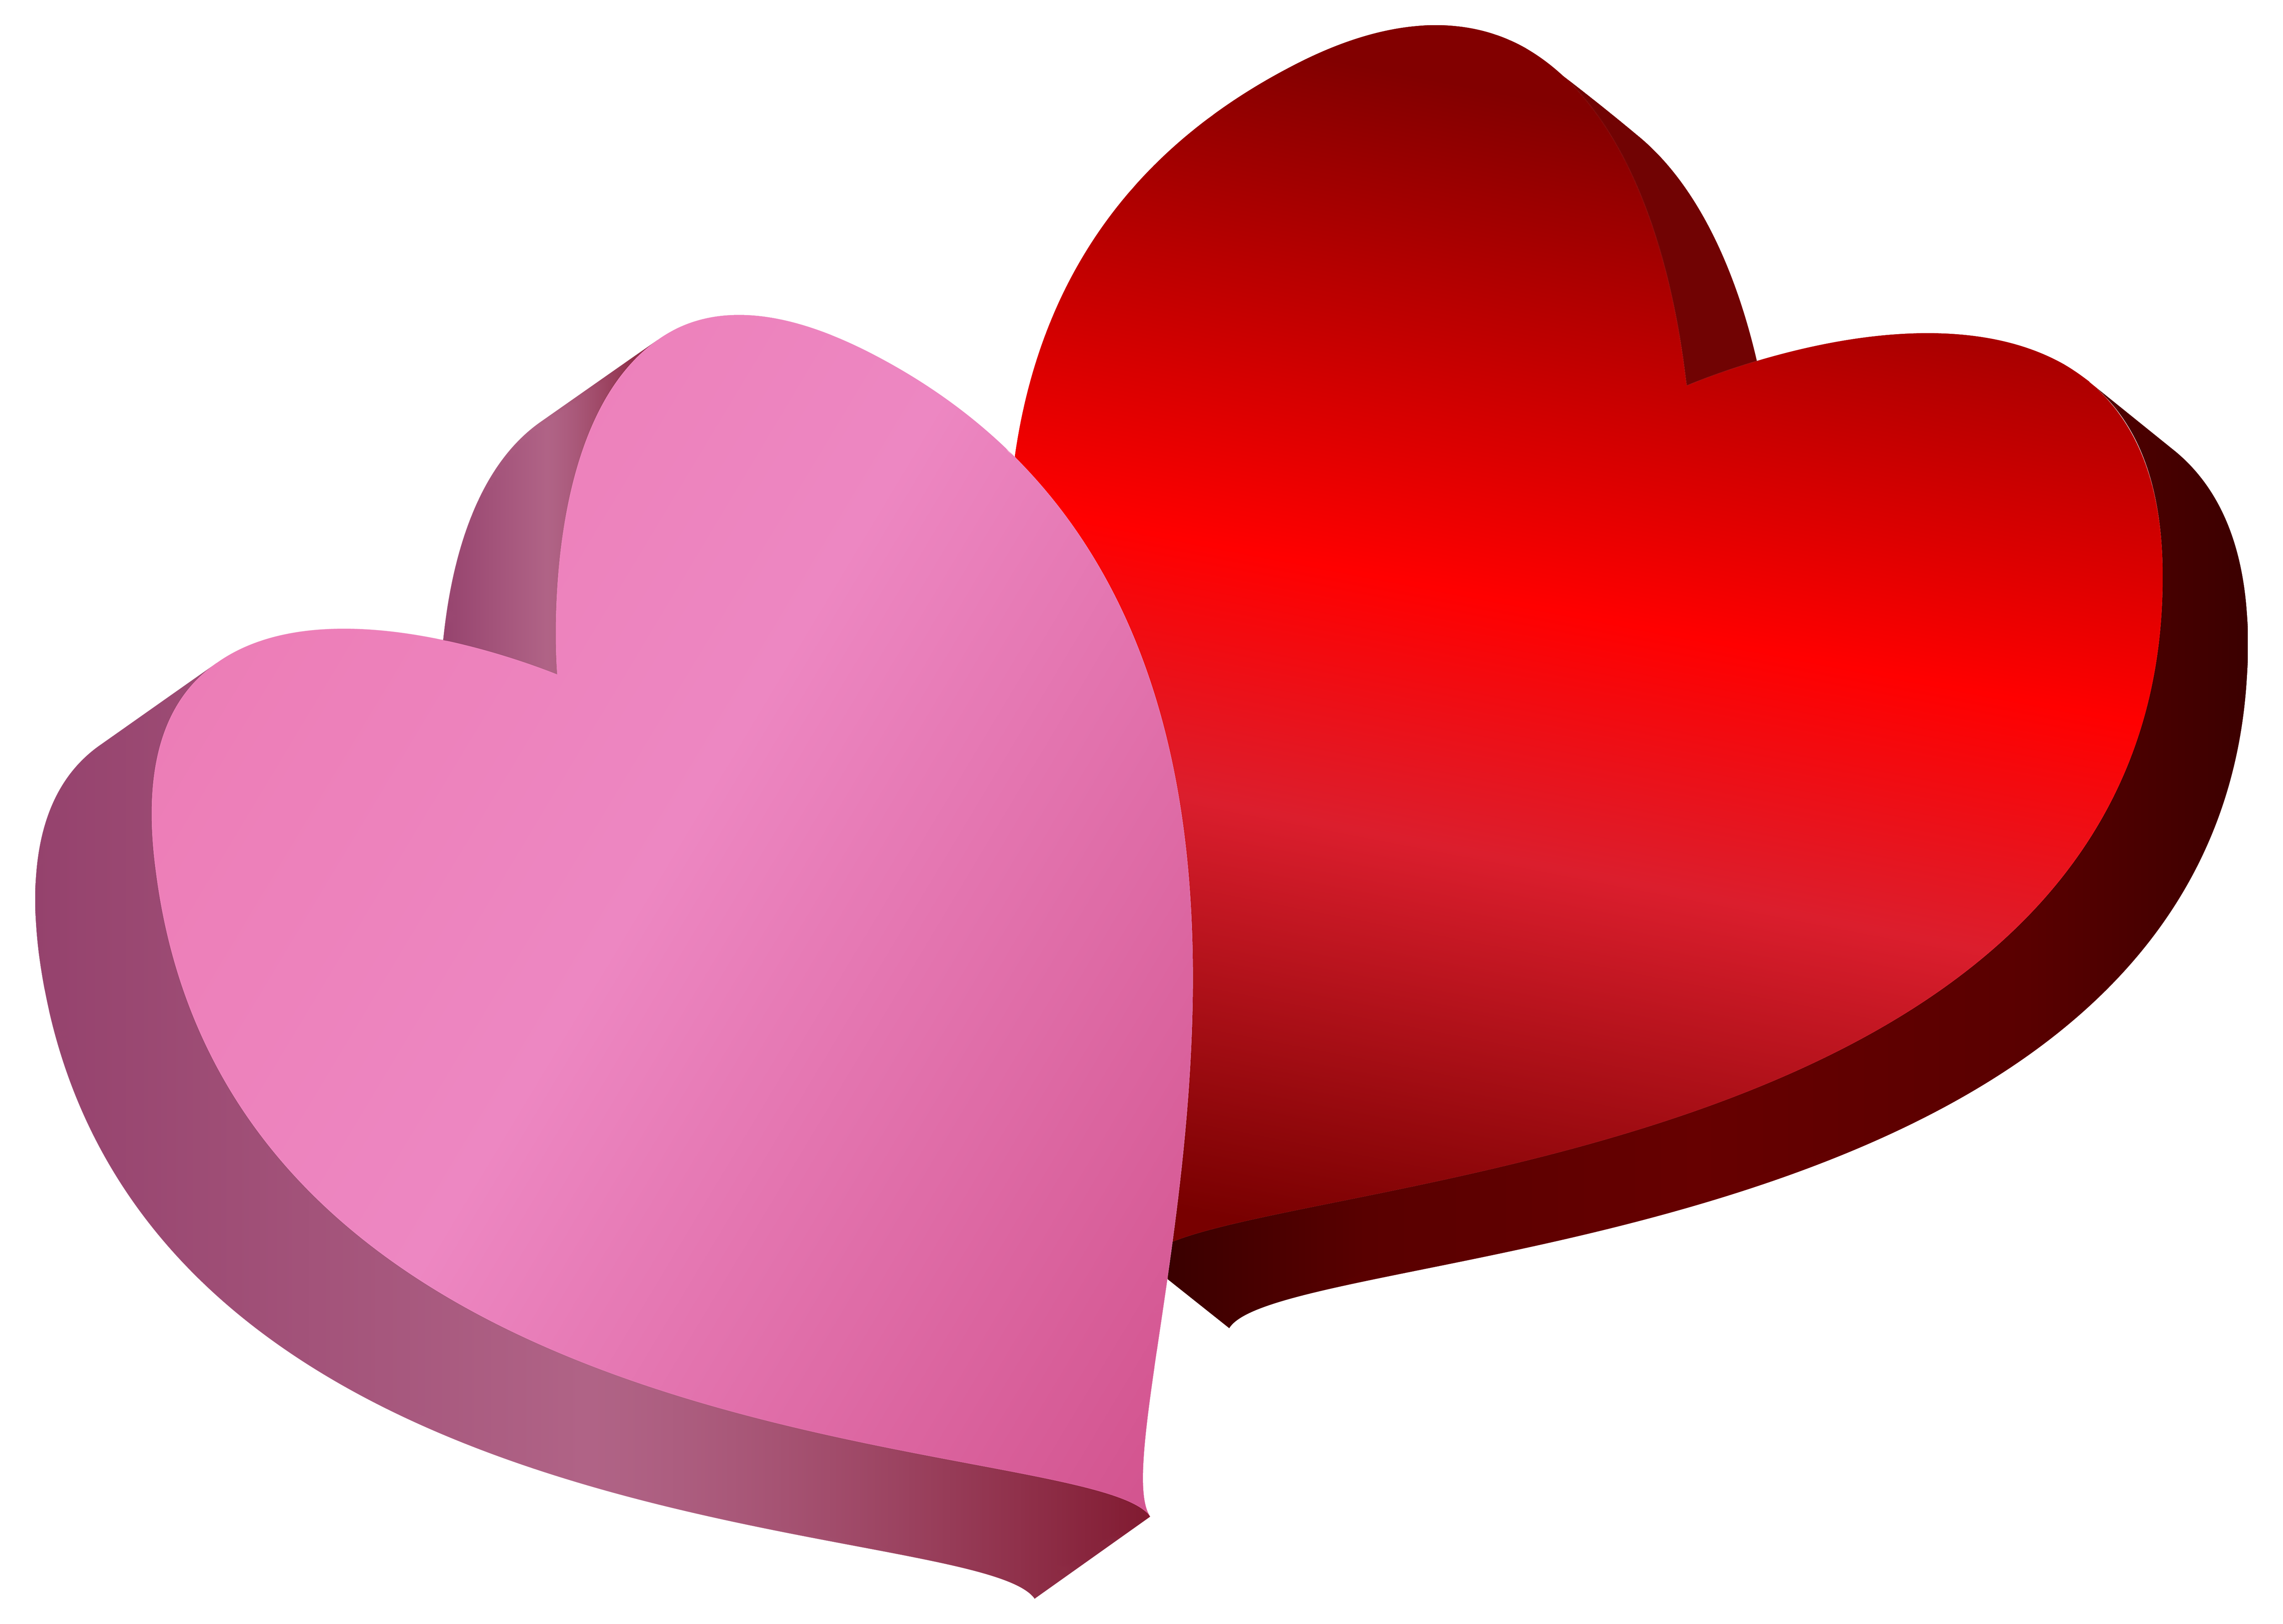 Pink and red png. Queen clipart hearts